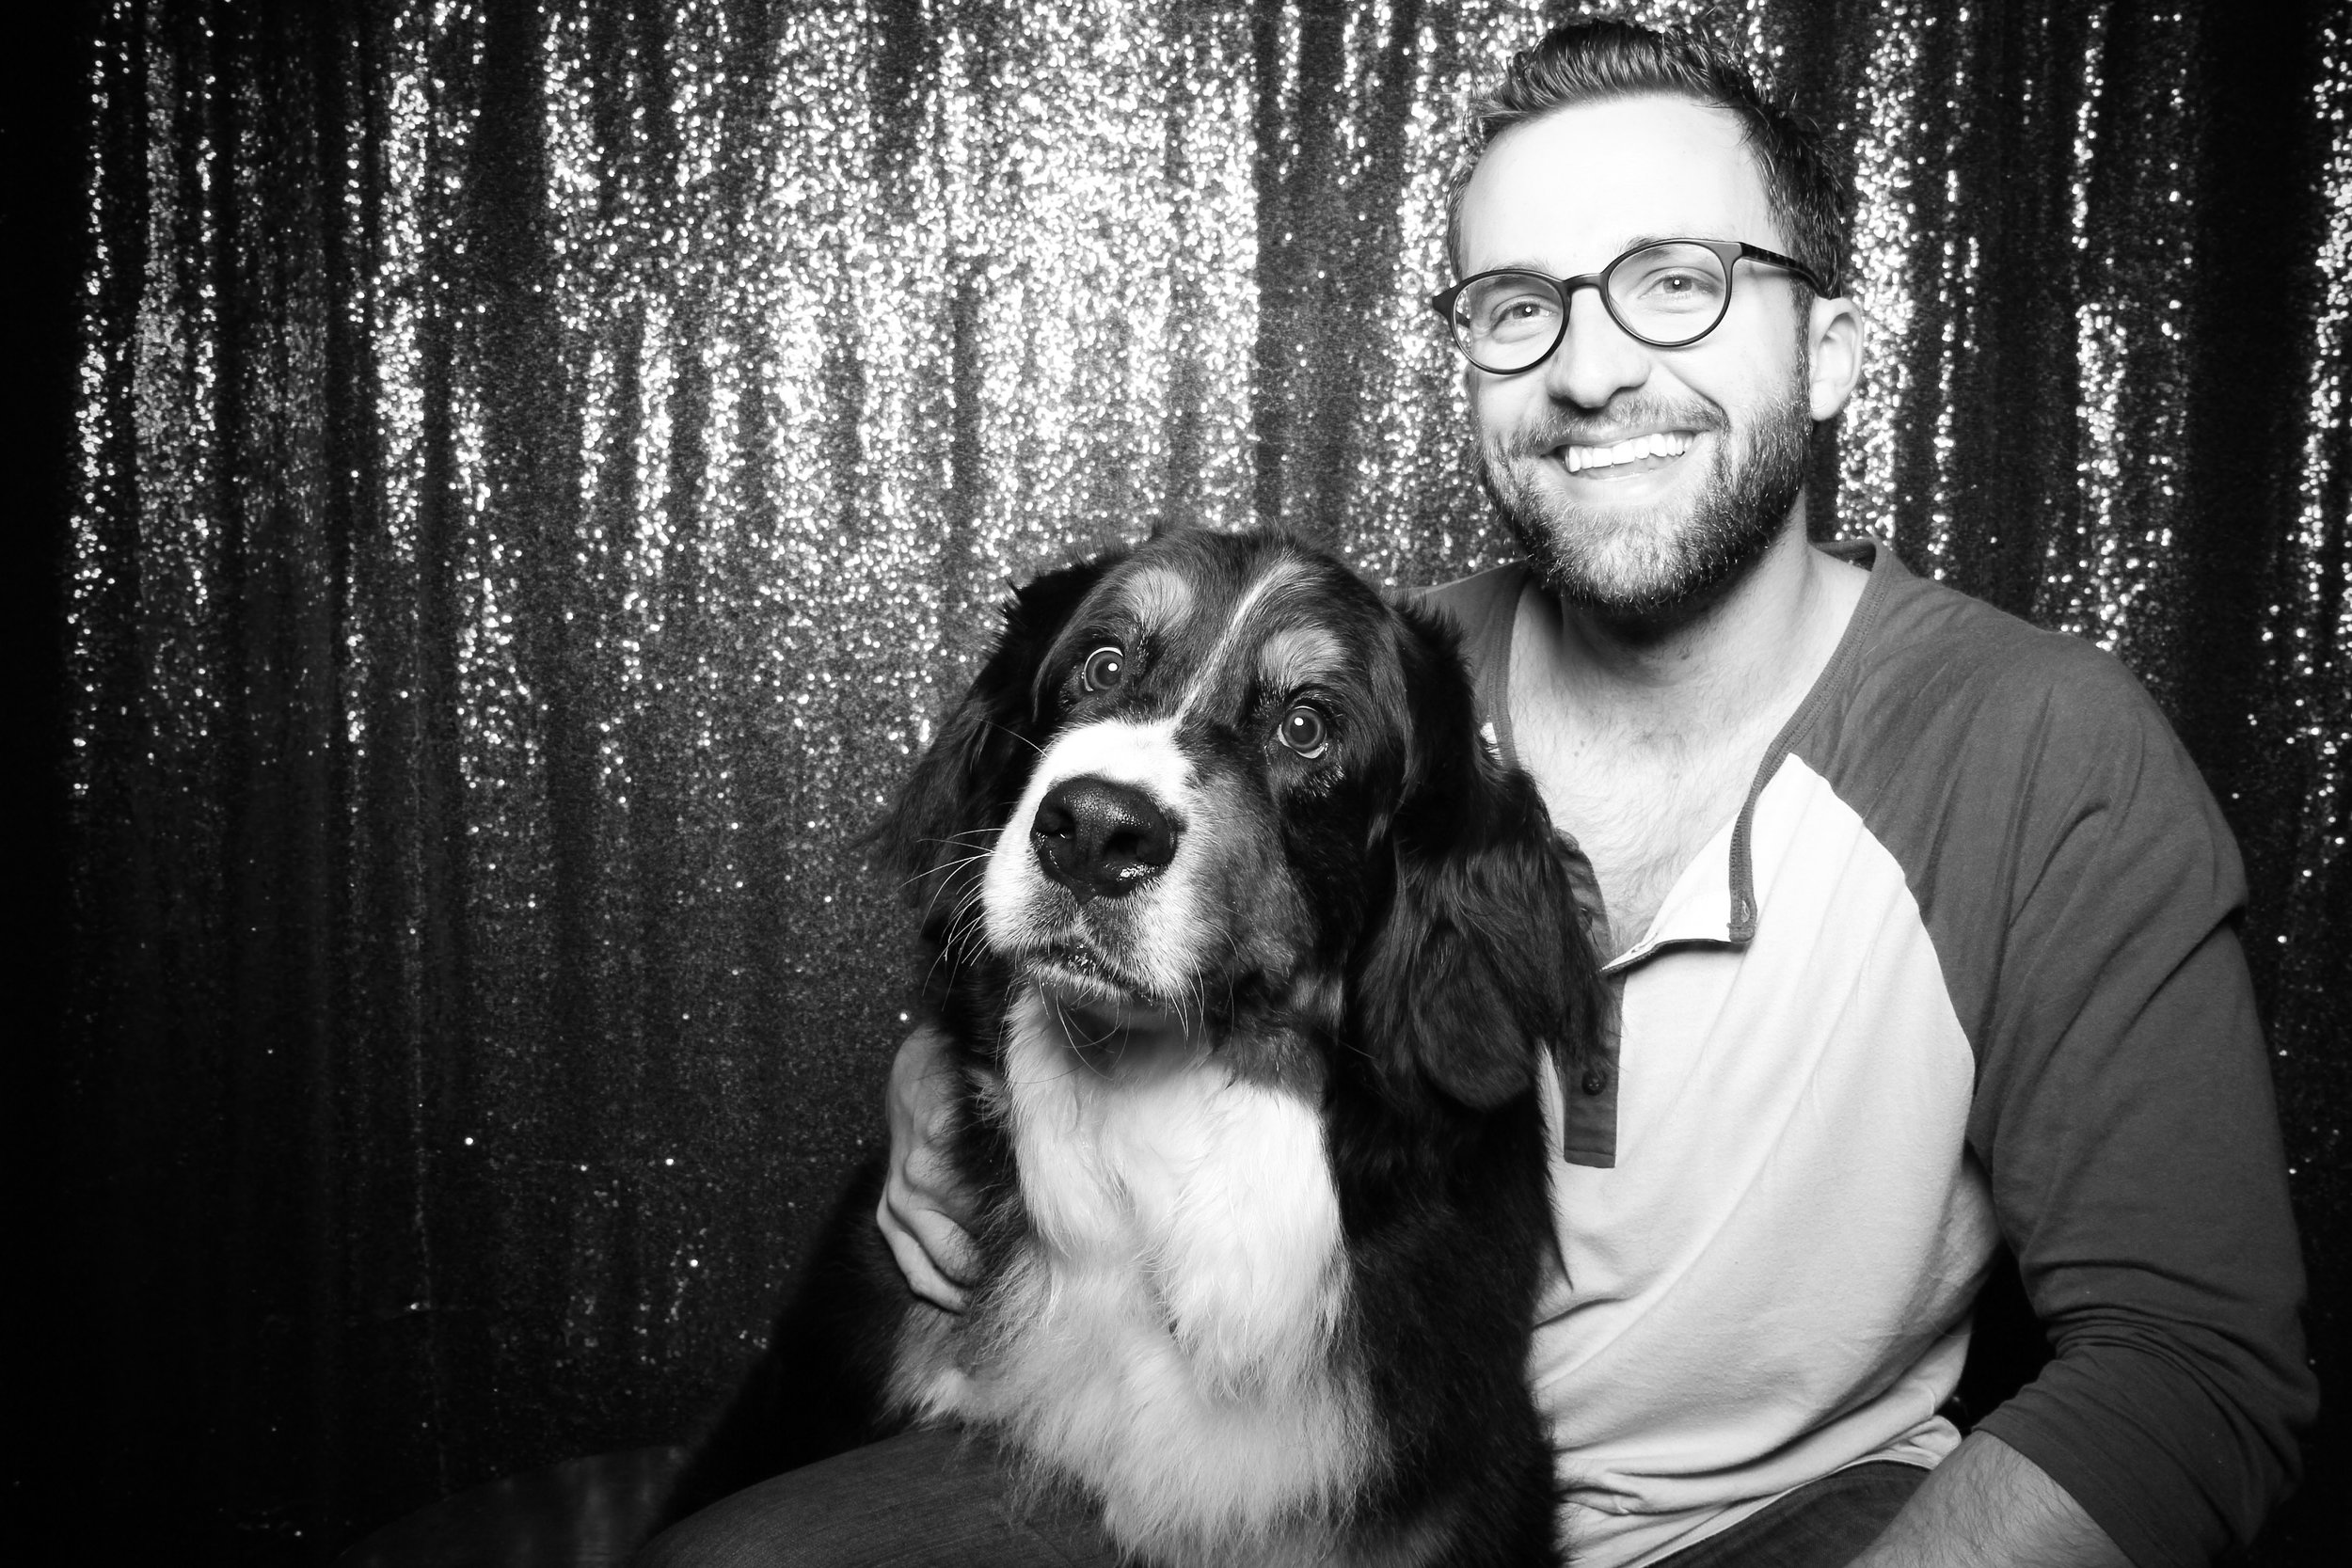 Chicago_Vintage_Photobooth_Valentines_Day_Dog_22.jpg